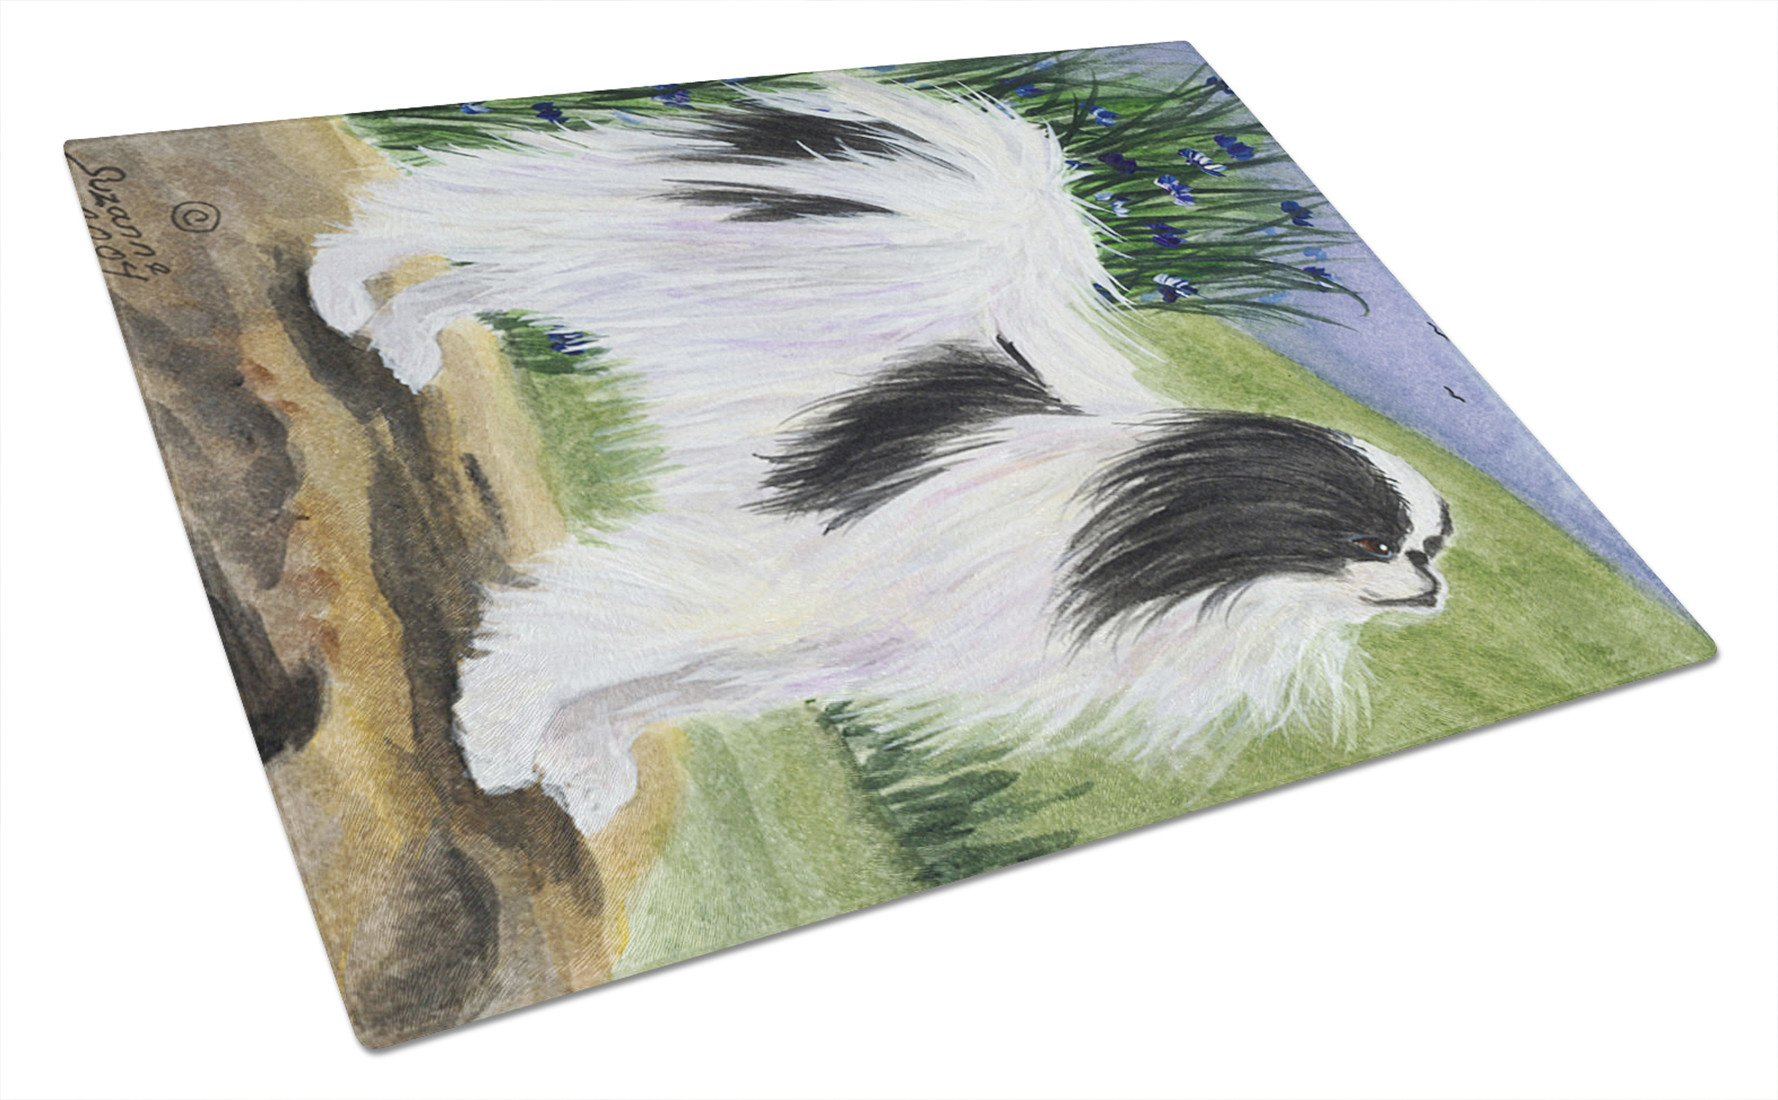 Japanese Chin Glass Cutting Board Large by Caroline's Treasures